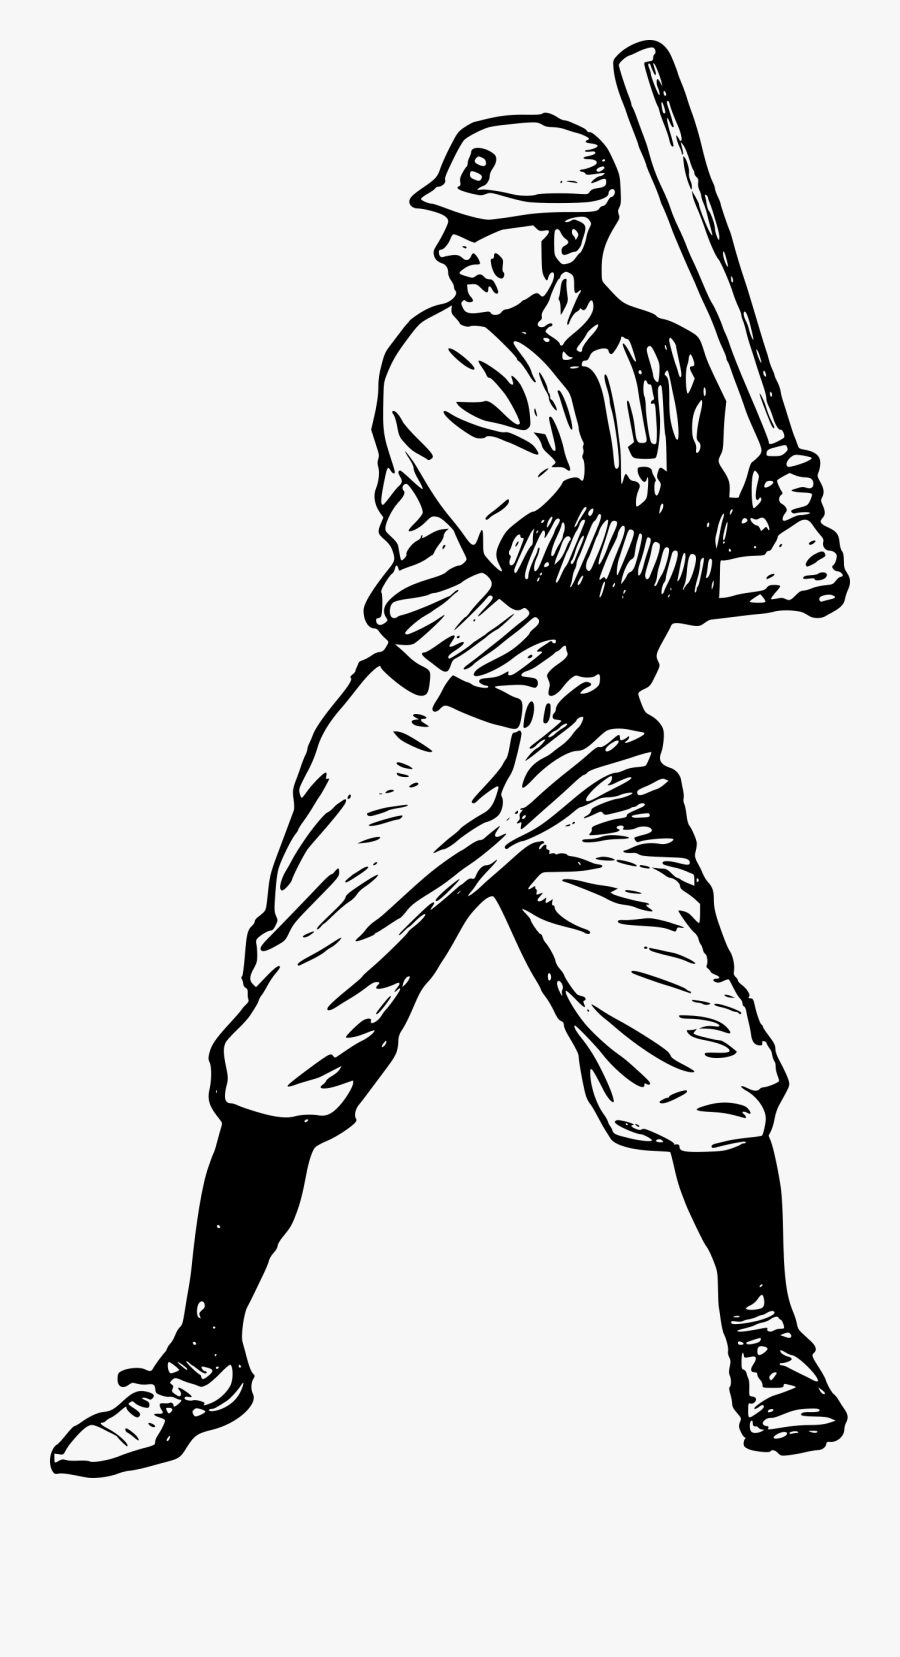 Baseball Player - Vintage Baseball Clip Art, Transparent Clipart